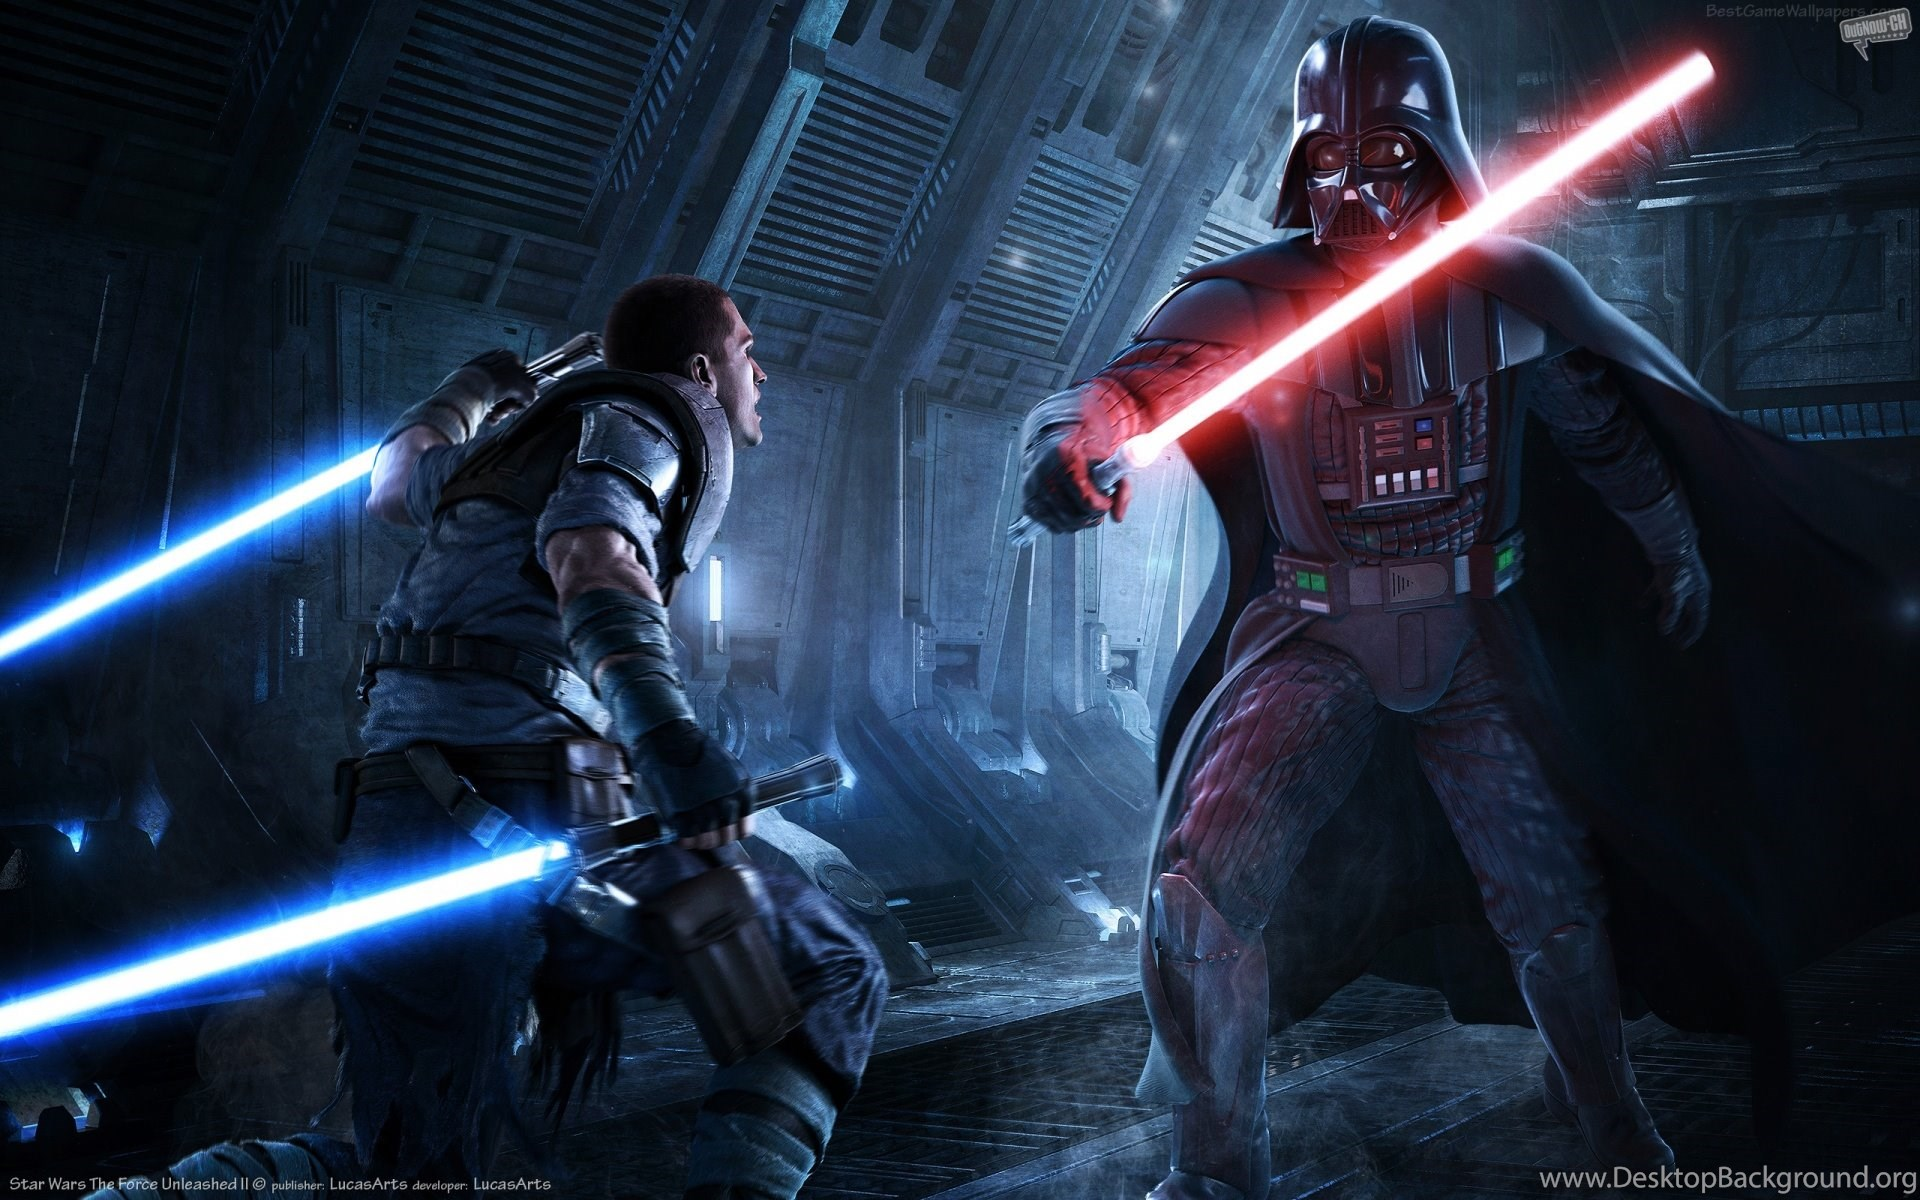 1920x1200 Star Wars Force Unleashed 2 Desktop Pc And Mac Wallpapers Desktop Background